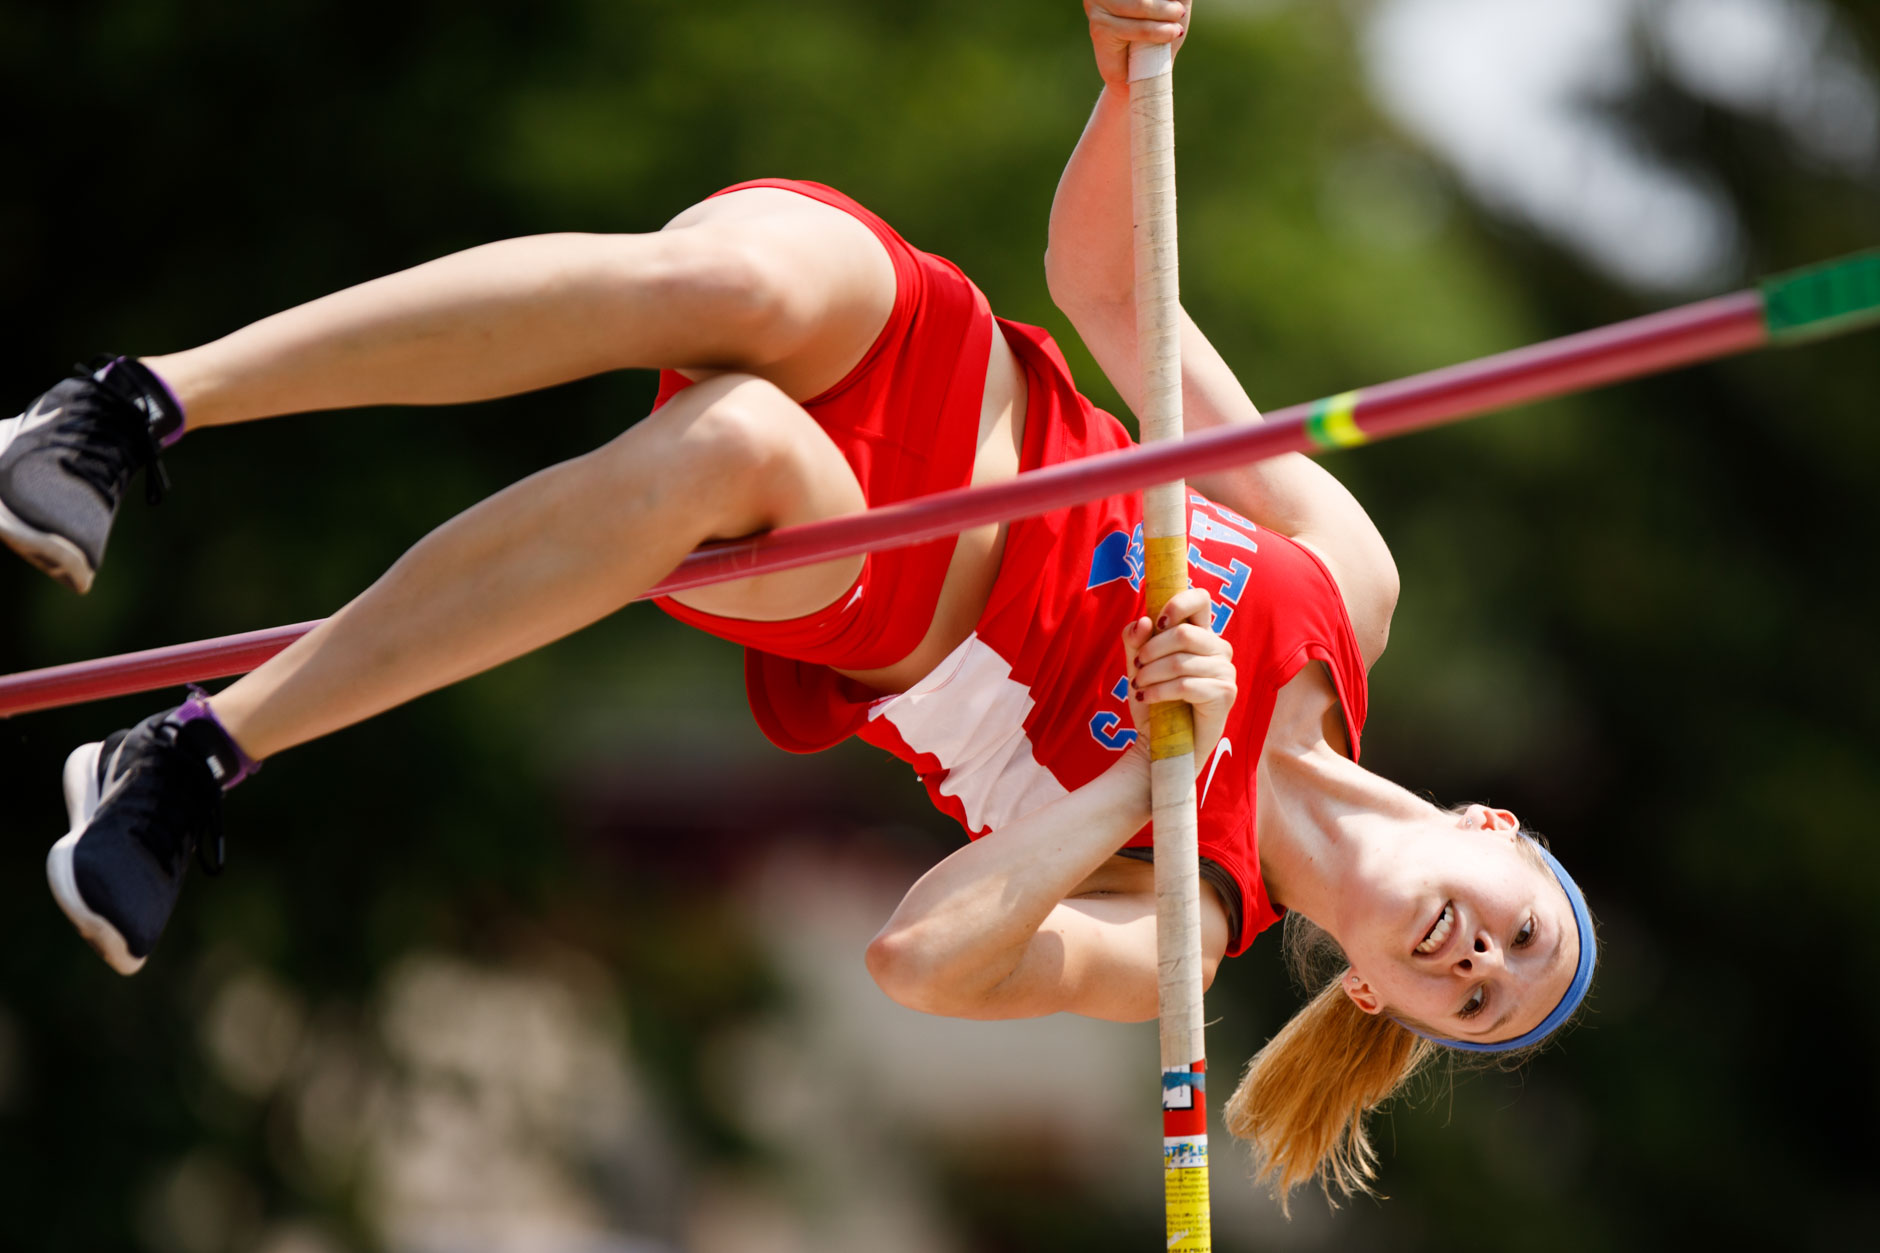 Owen Valley's Dazia Drake competes in the pole vault during the IHSAA Girls Track and Field State Finals in Bloomington, Indiana on Saturday, June 1, 2019. (James Brosher for The Herald-Times)